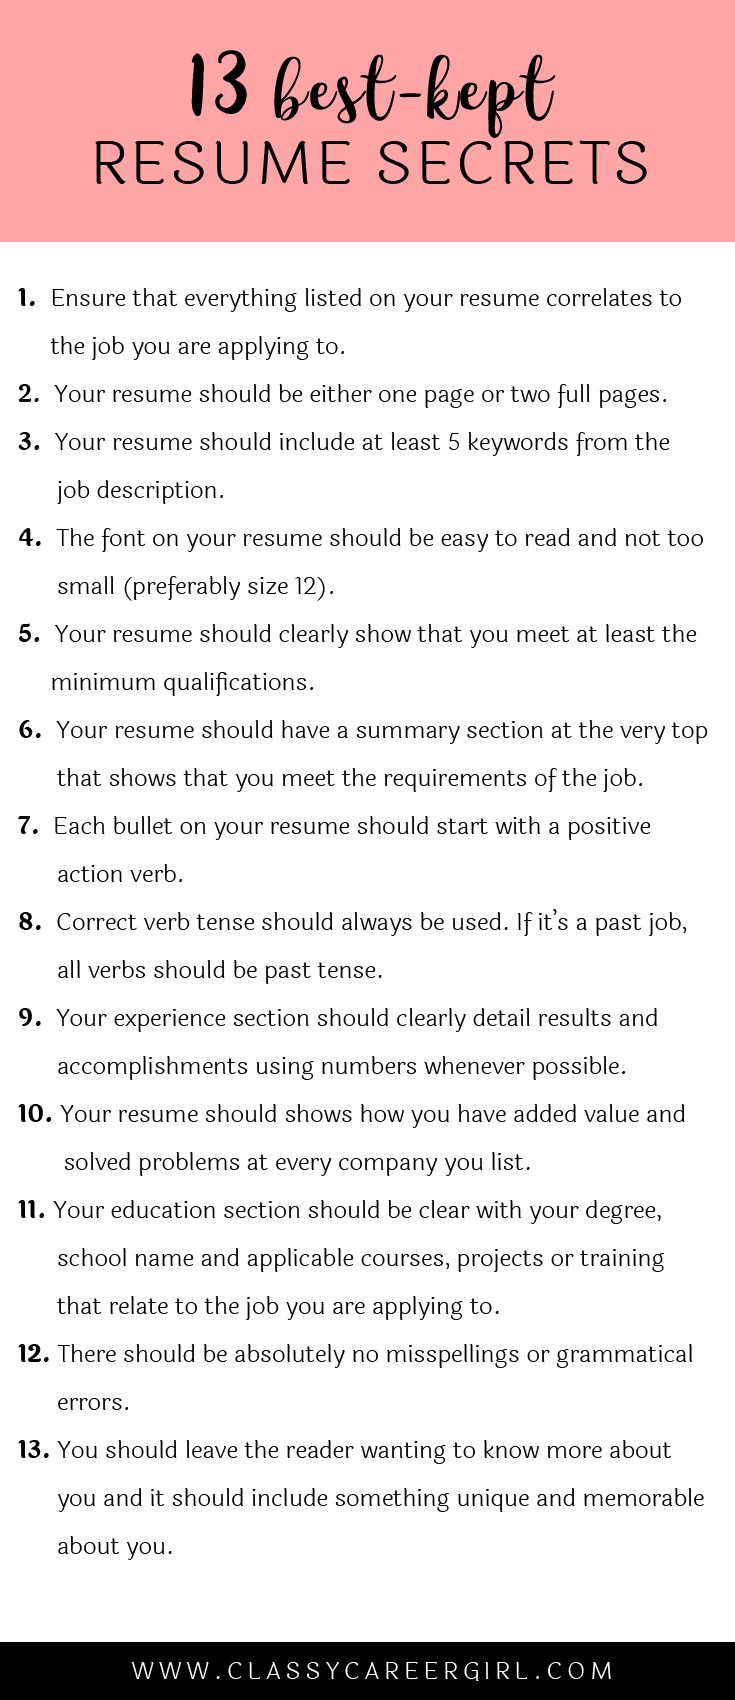 Opposenewapstandardsus  Terrific  Ideas About Resume On Pinterest  Cv Format Resume Cv And  With Entrancing Some Hiring Managers Will Toss Your Resume Out If You Dont Know These  With Comely Writer Resume Also Resume Professional In Addition Grad School Resume Example And Retail Experience Resume As Well As Example Of A Resume Cover Letter Additionally Personal Summary Resume From Pinterestcom With Opposenewapstandardsus  Entrancing  Ideas About Resume On Pinterest  Cv Format Resume Cv And  With Comely Some Hiring Managers Will Toss Your Resume Out If You Dont Know These  And Terrific Writer Resume Also Resume Professional In Addition Grad School Resume Example From Pinterestcom